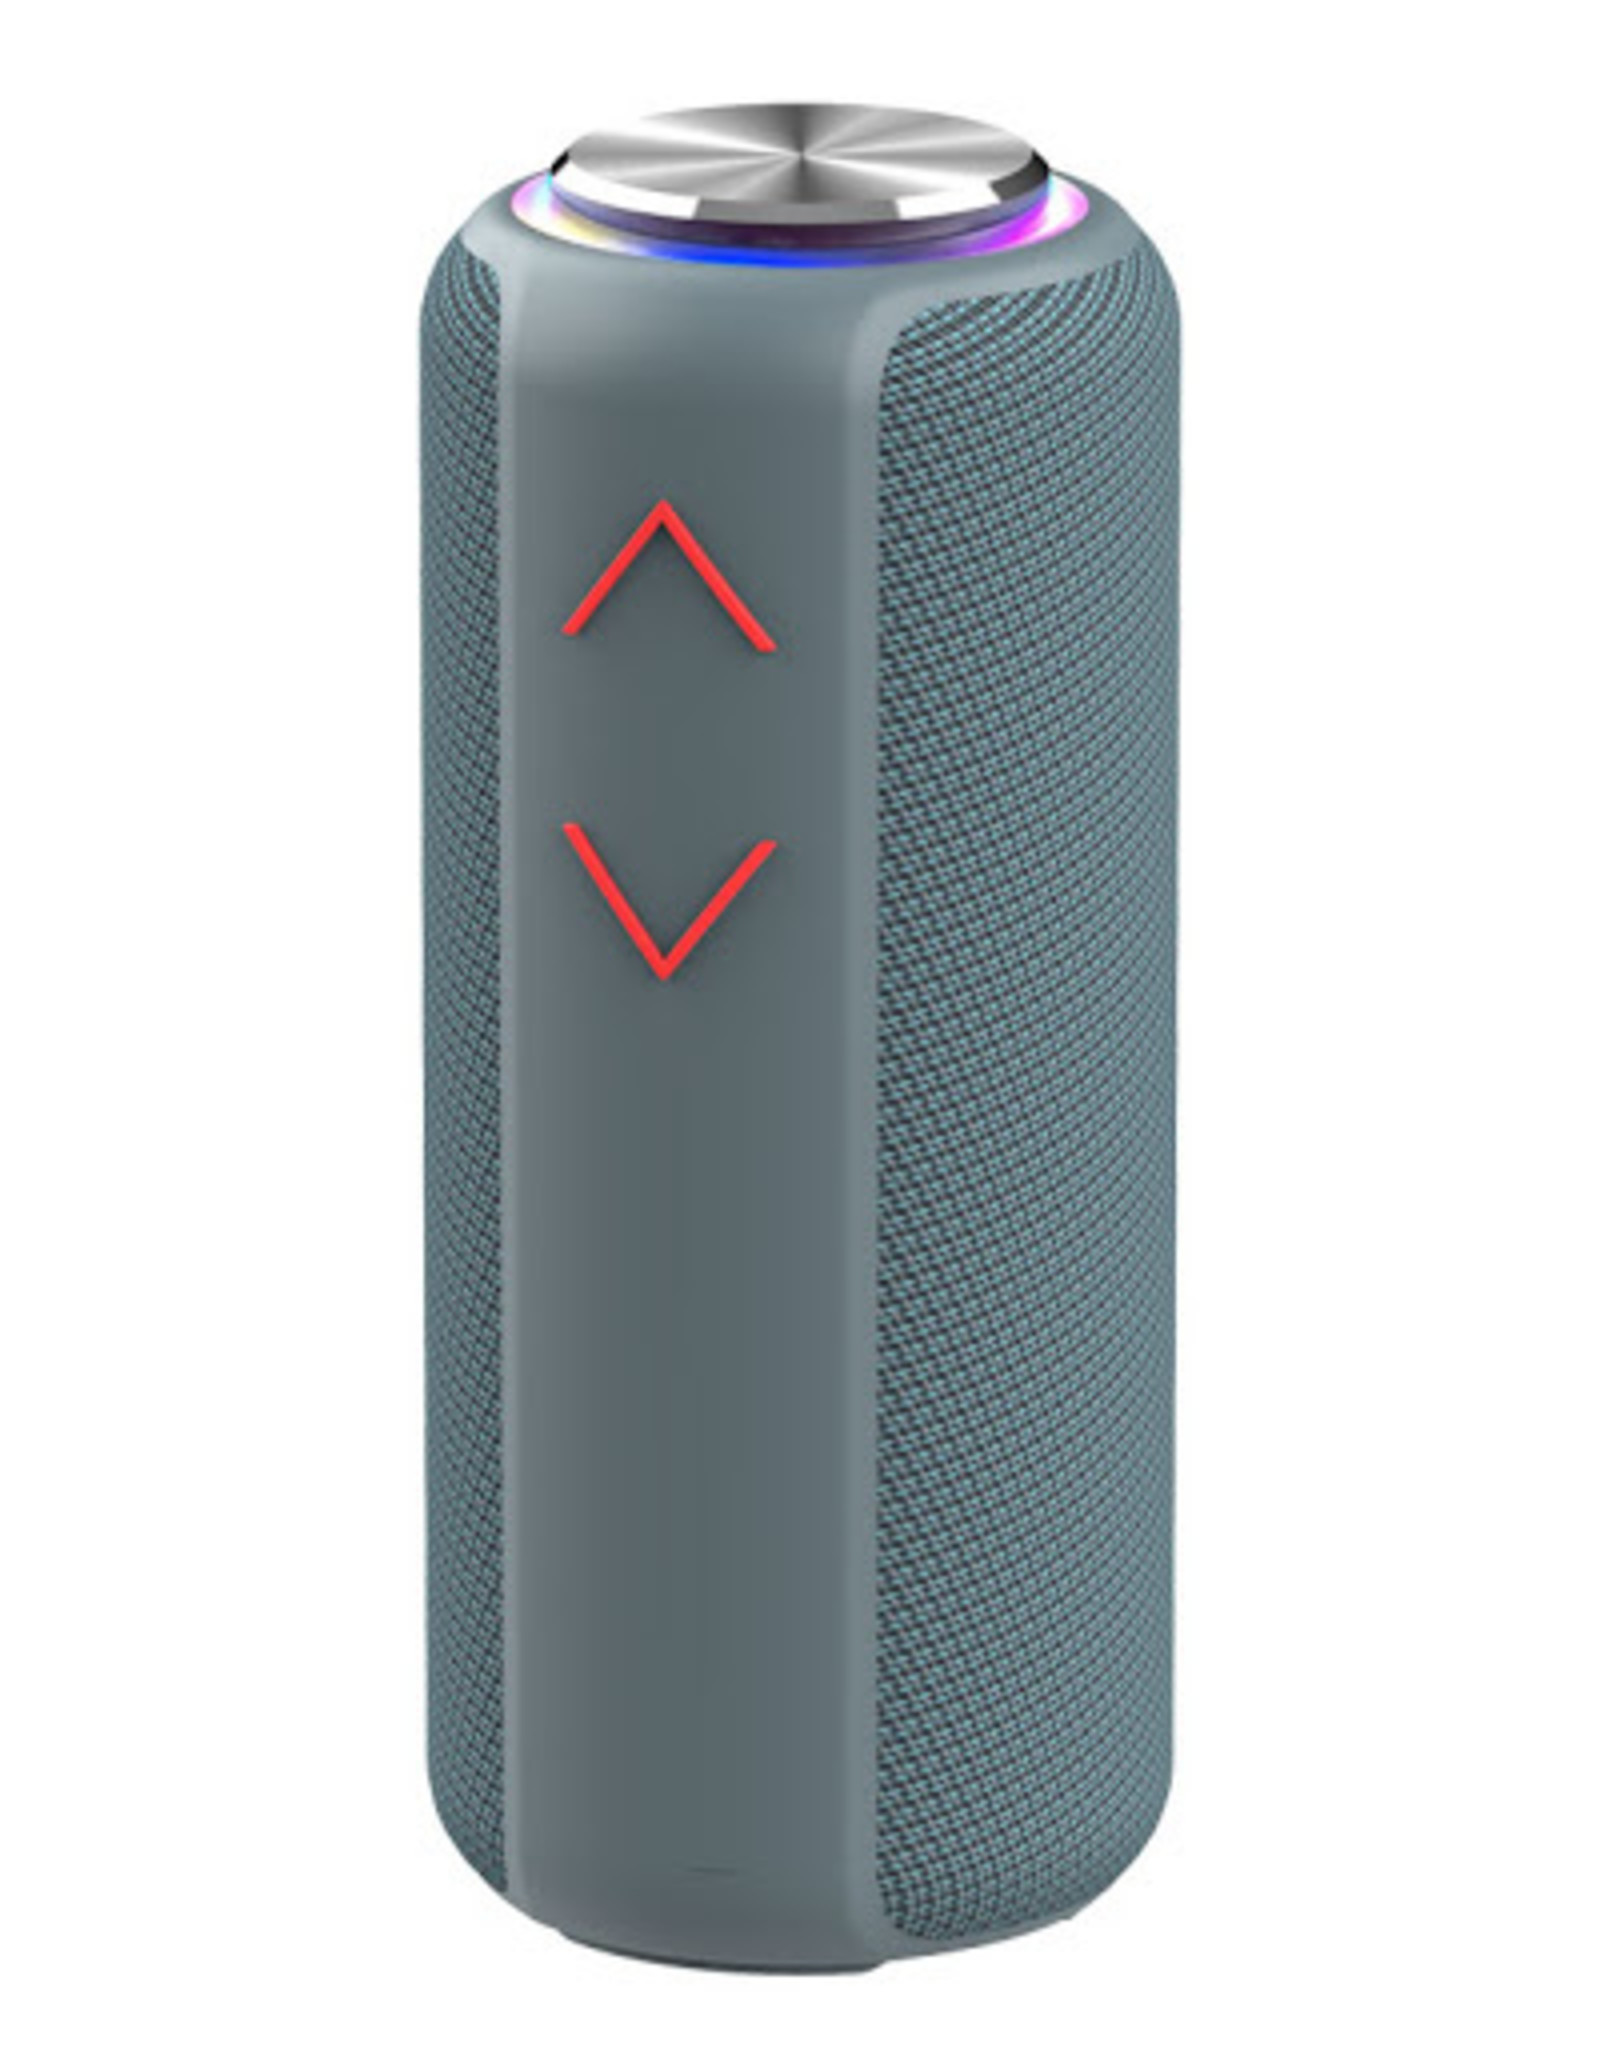 HopeStar HOPESTAR Speaker P30 Outdoor Portable Wireless Speaker